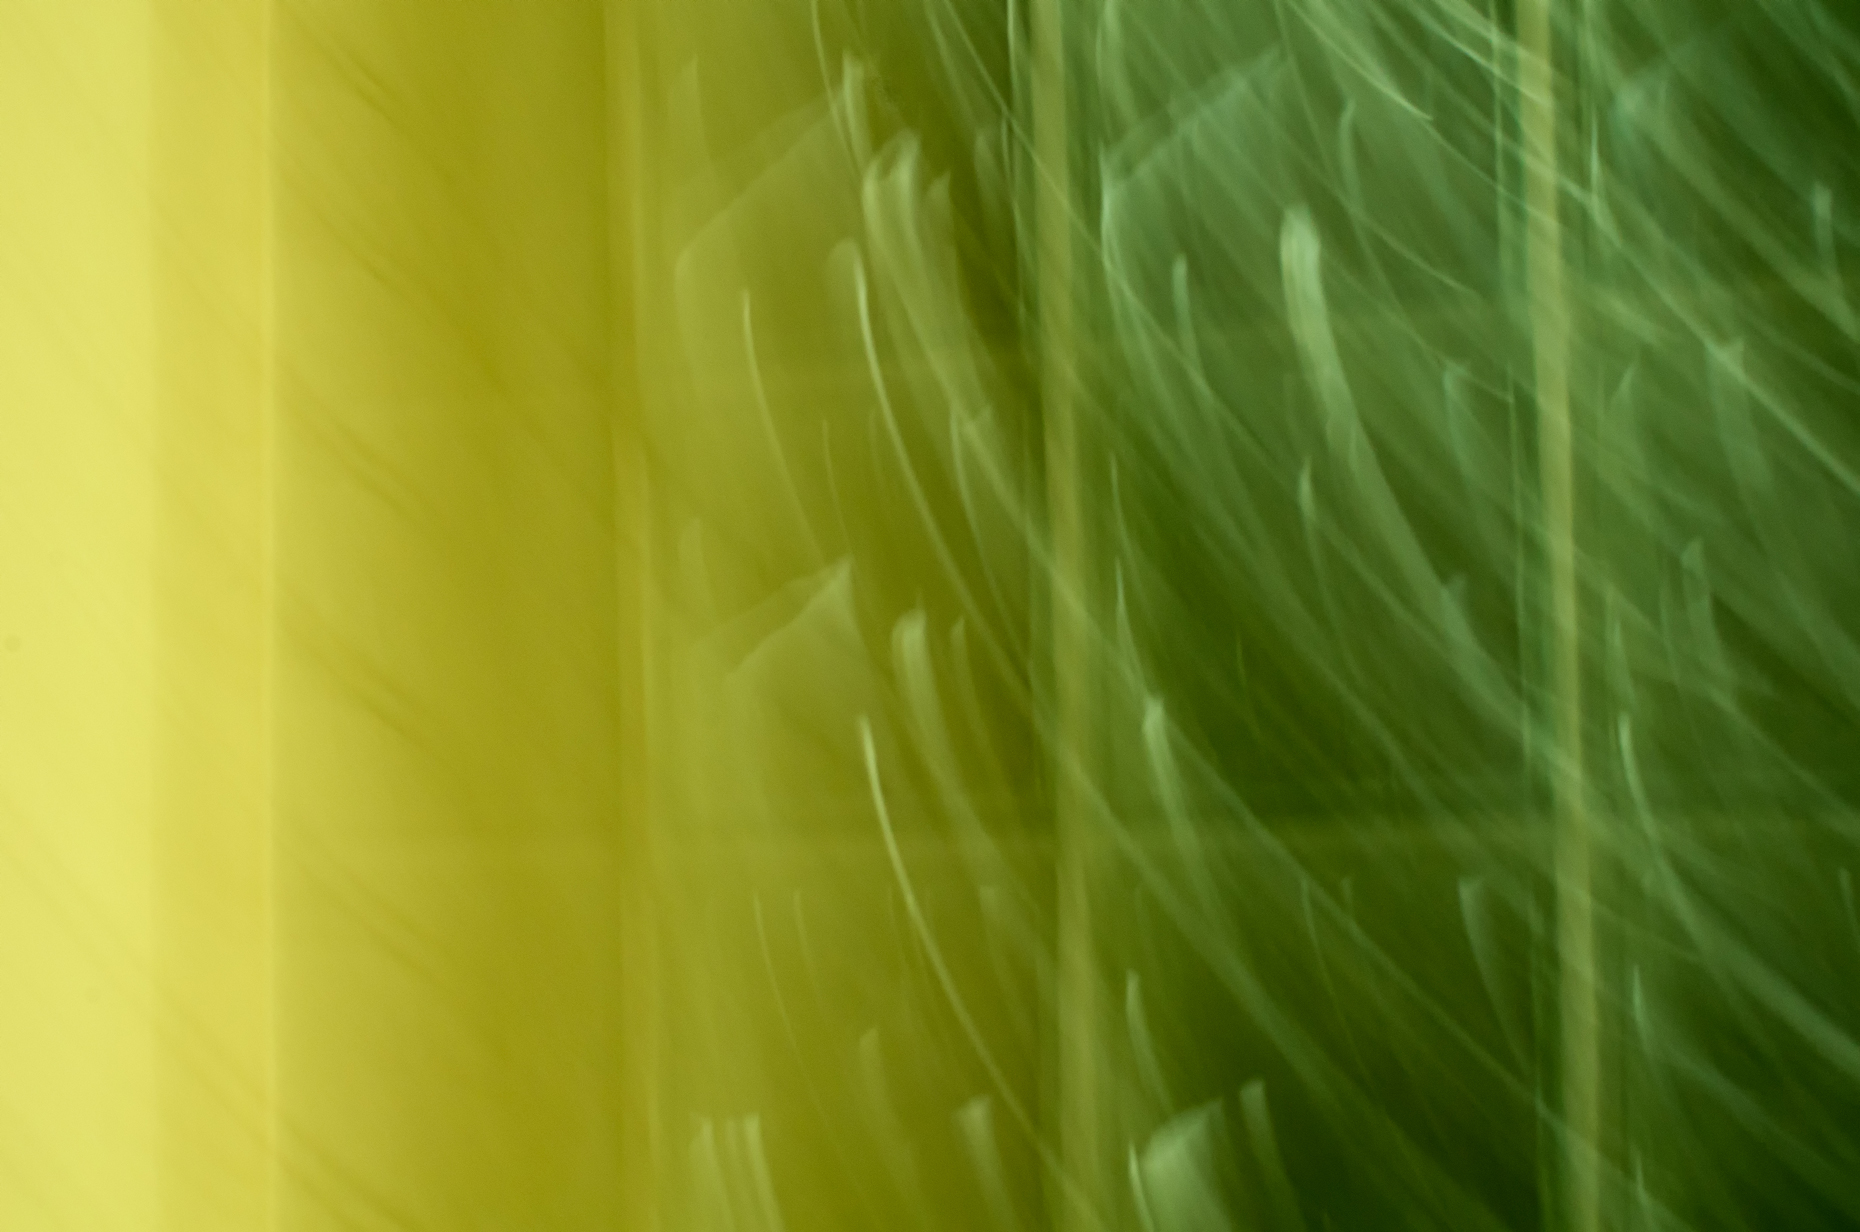 Abstract-Shades-of-Green-2.jpg